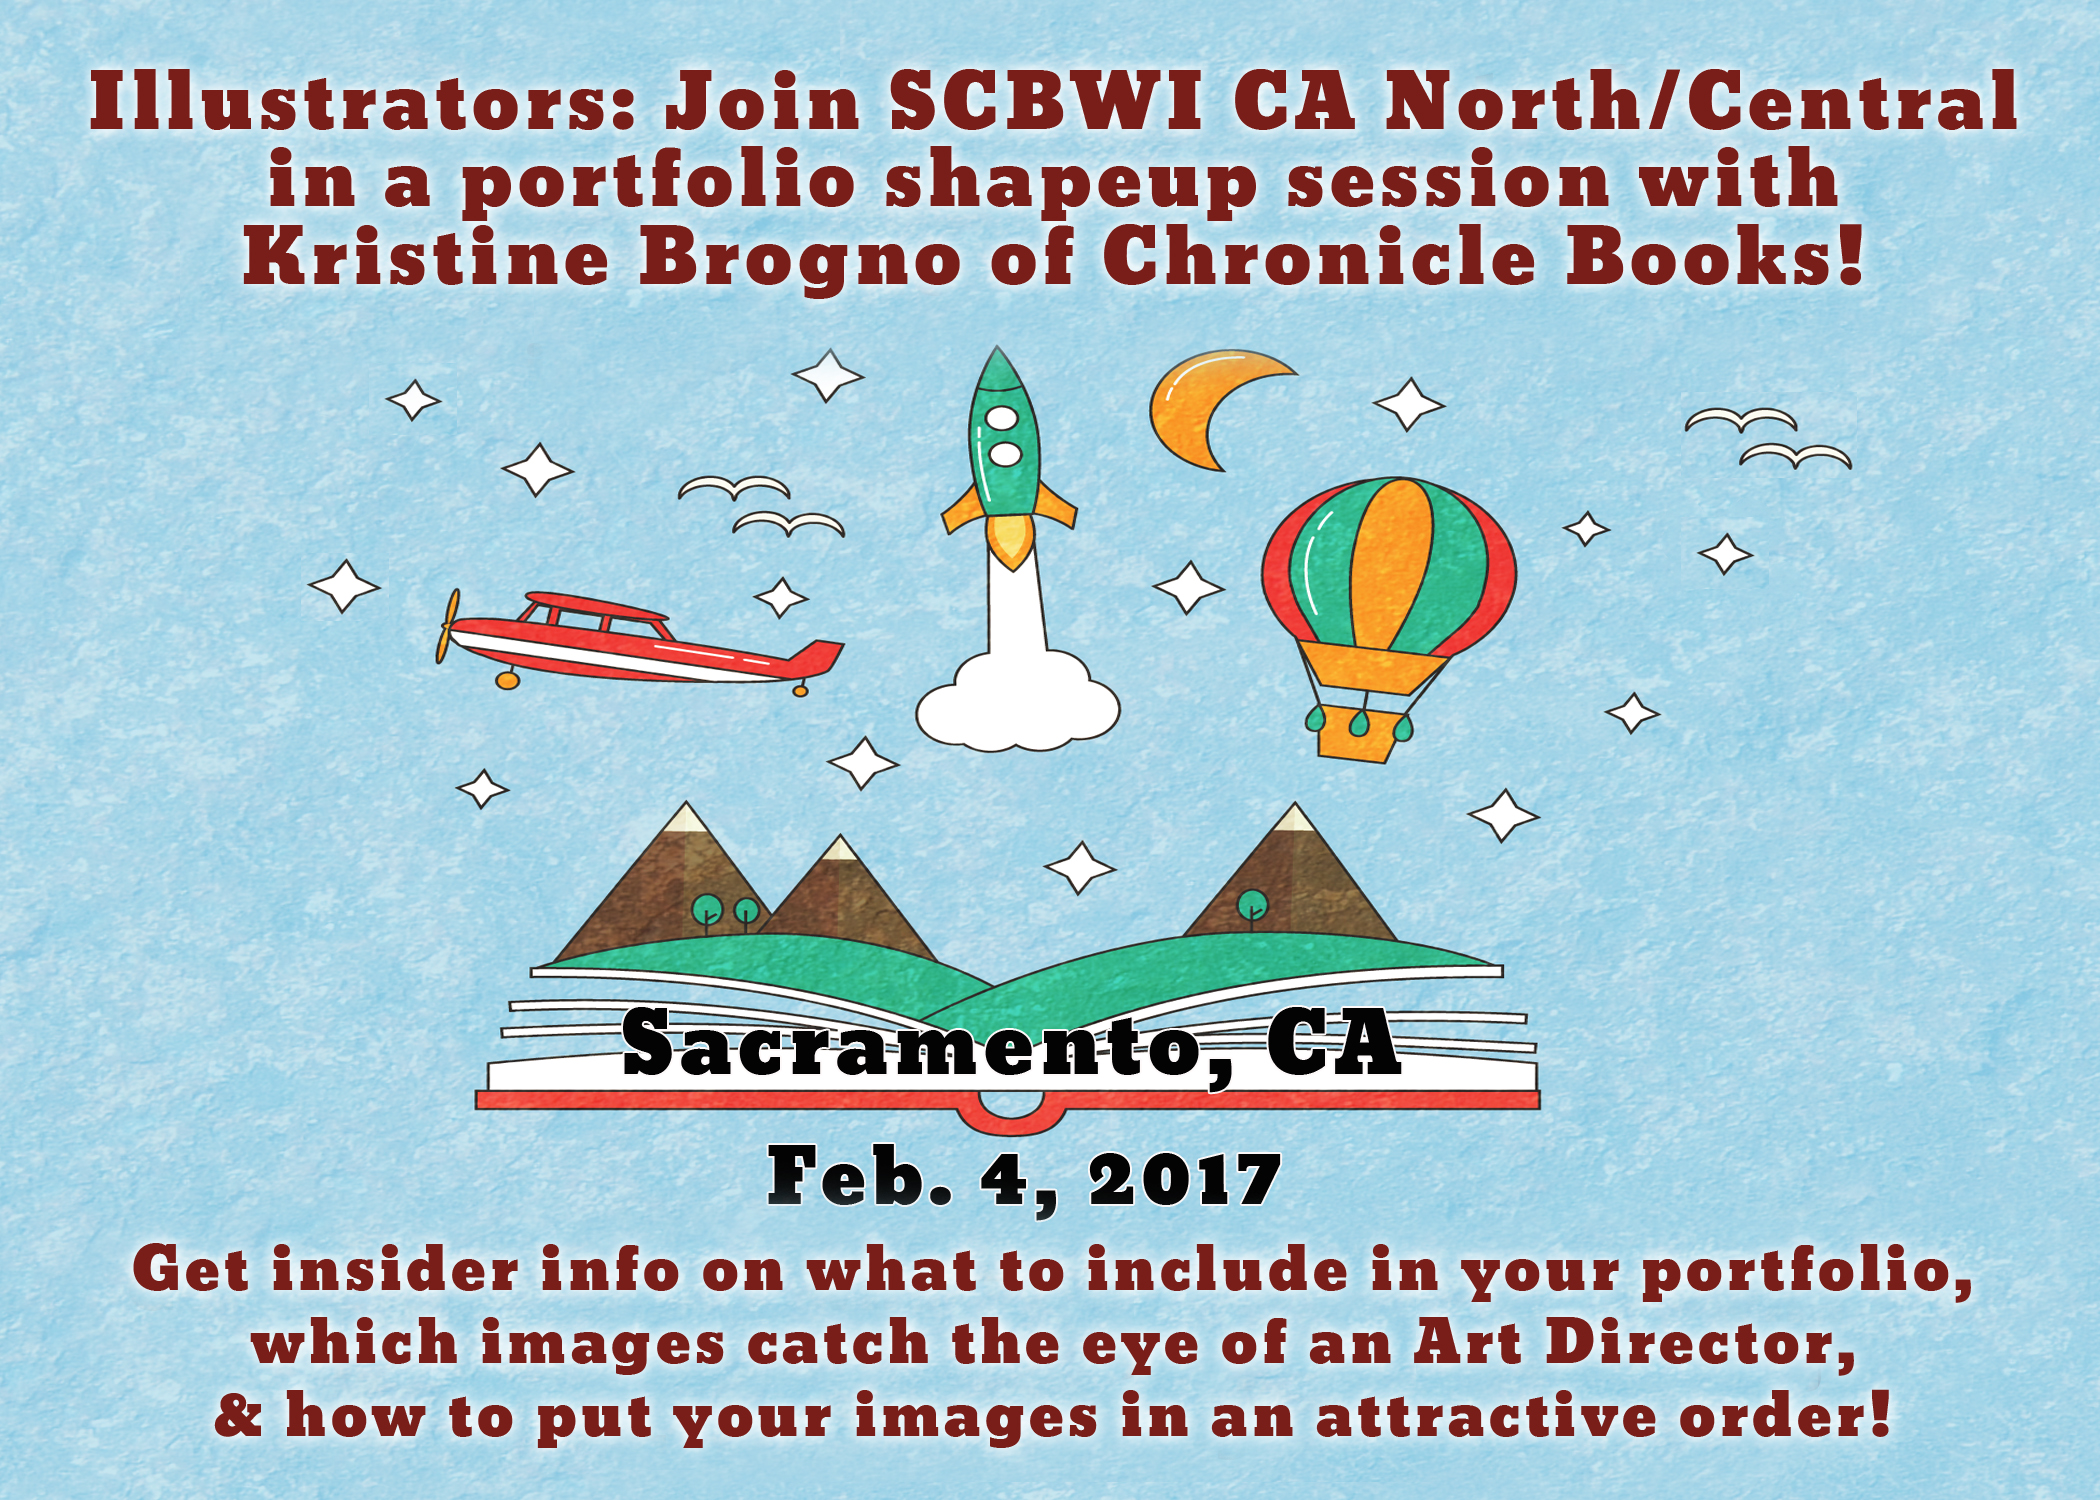 Illustrators: Join SCBWI CA North/Central in a portfolio shapeup session with Kristine Brogno of Chronicle Books!